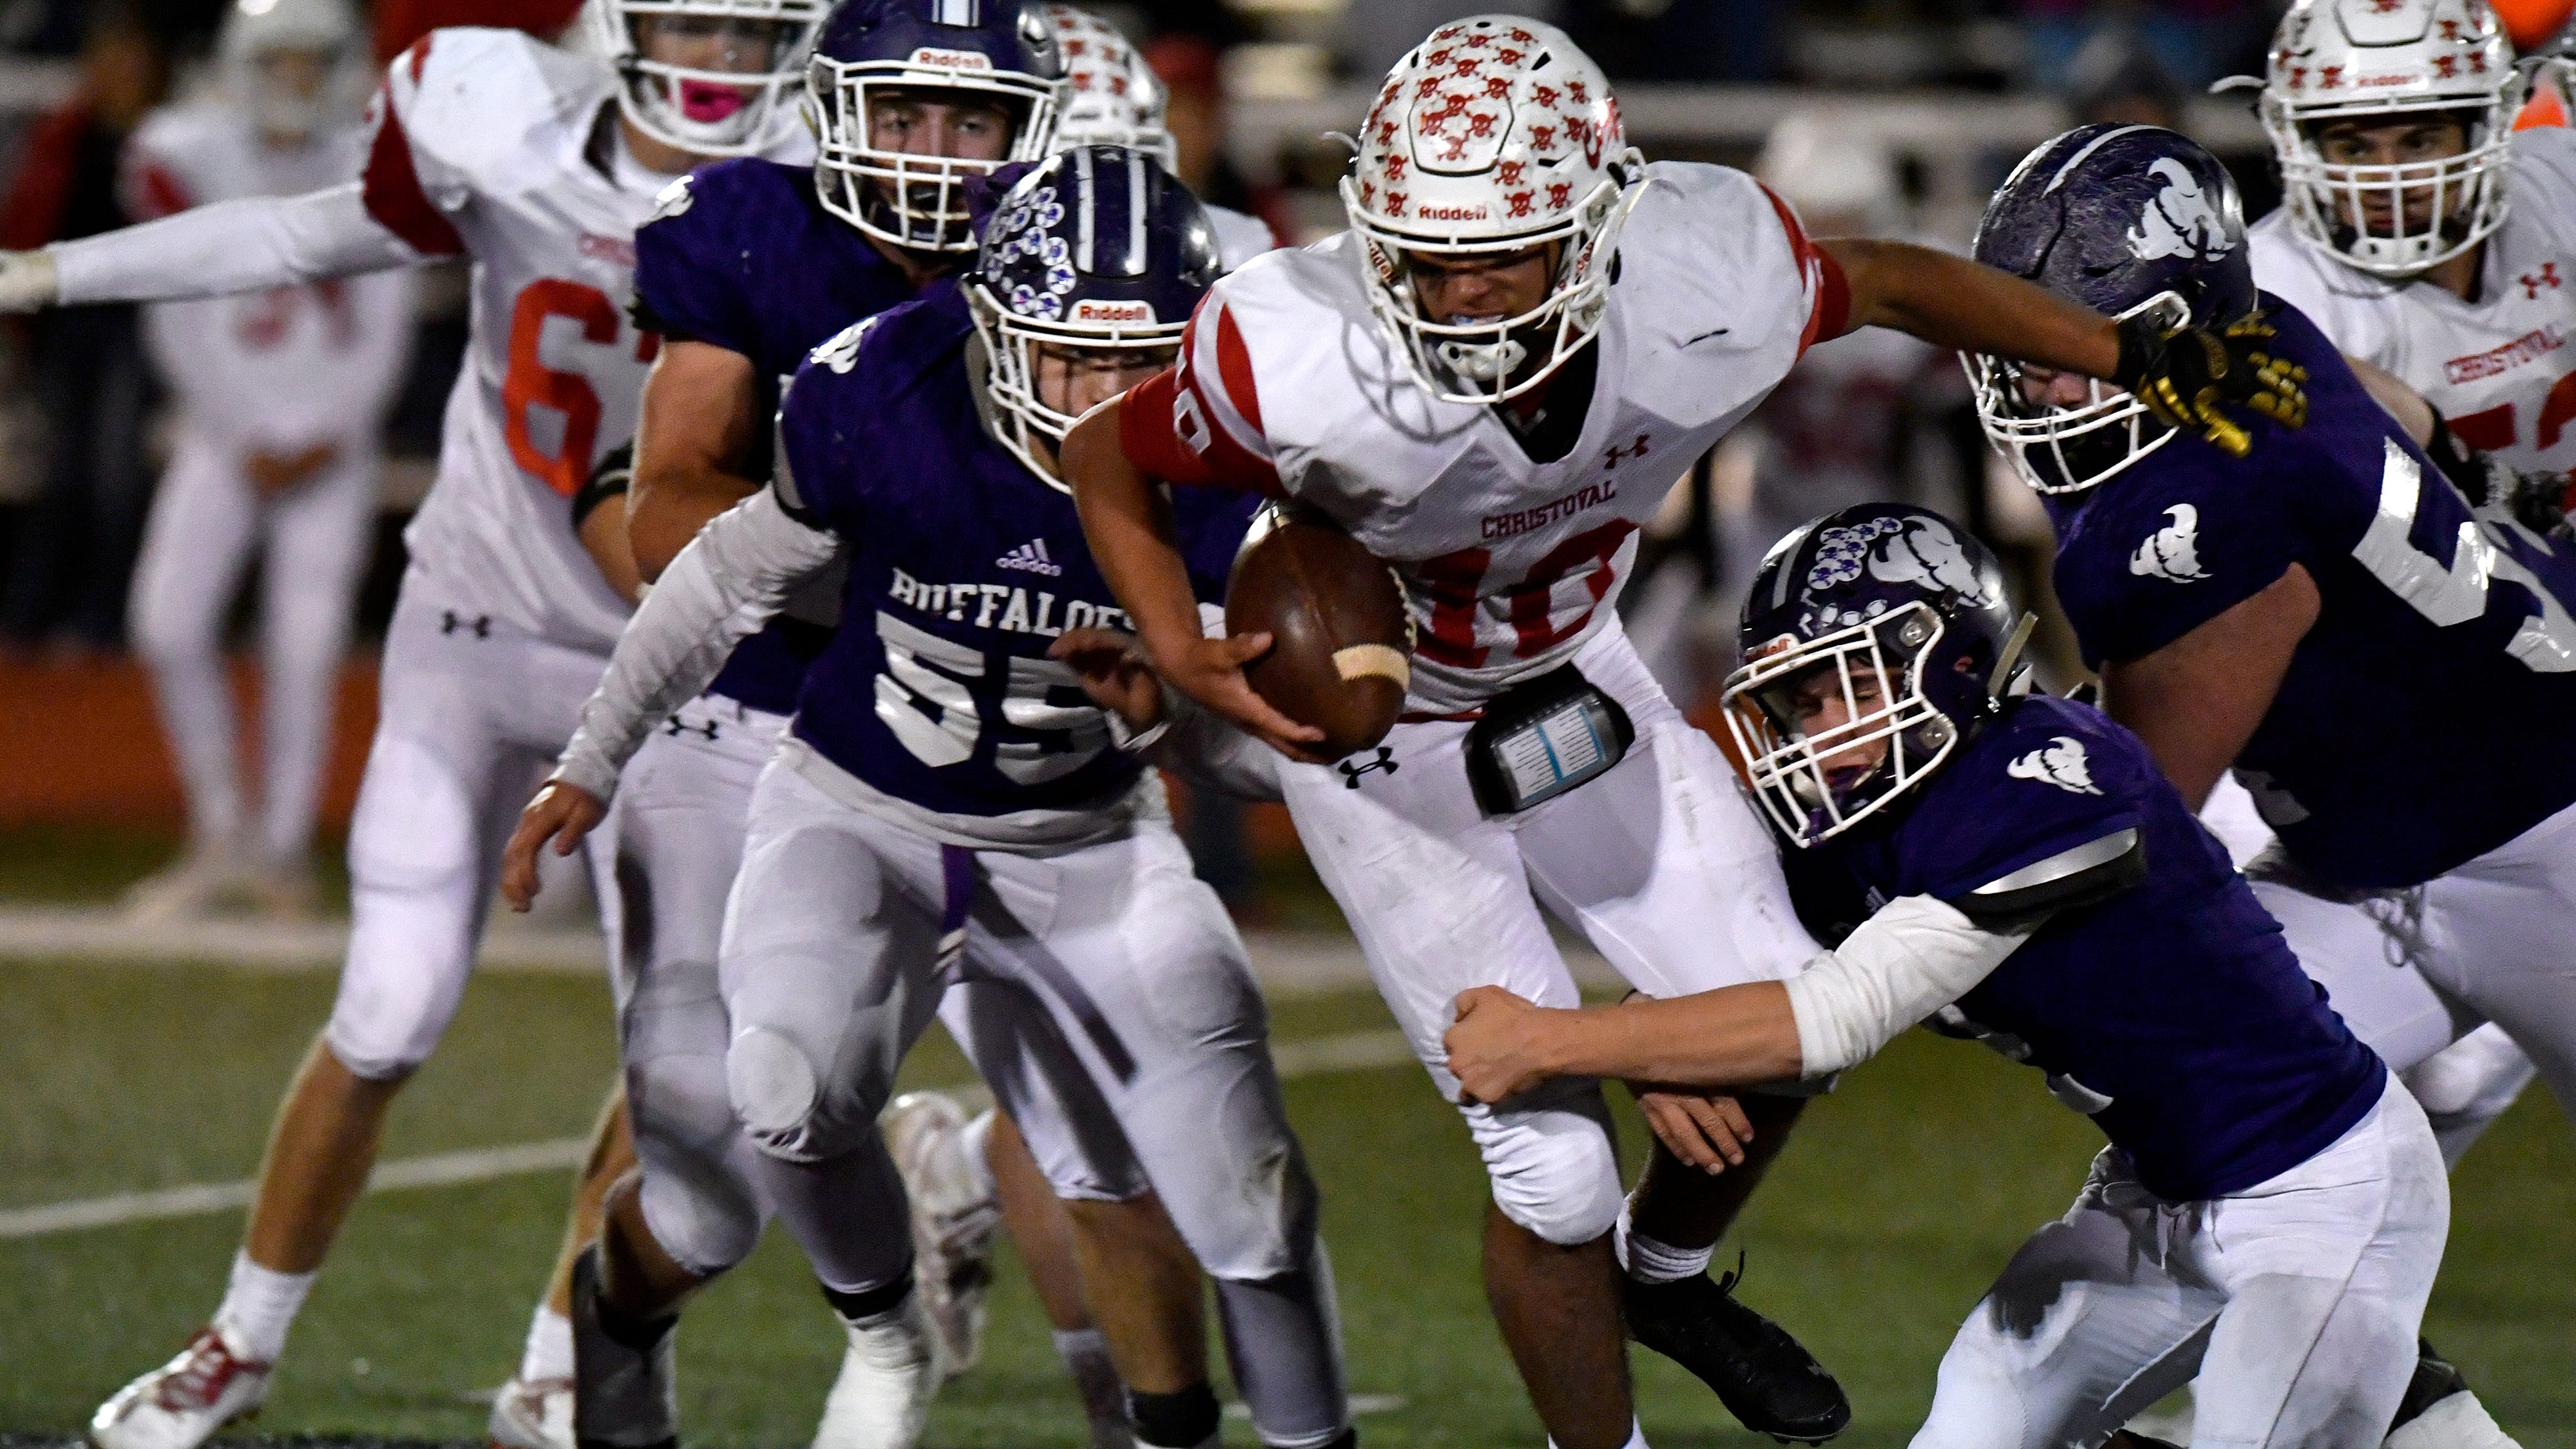 Christoval quarterback Brayden Wilcox carries the ball during Friday's District 7 & 8 Region II playoffs against Cross Plains Nov. 16, 2018 in Roscoe. Christoval won, 40-34.